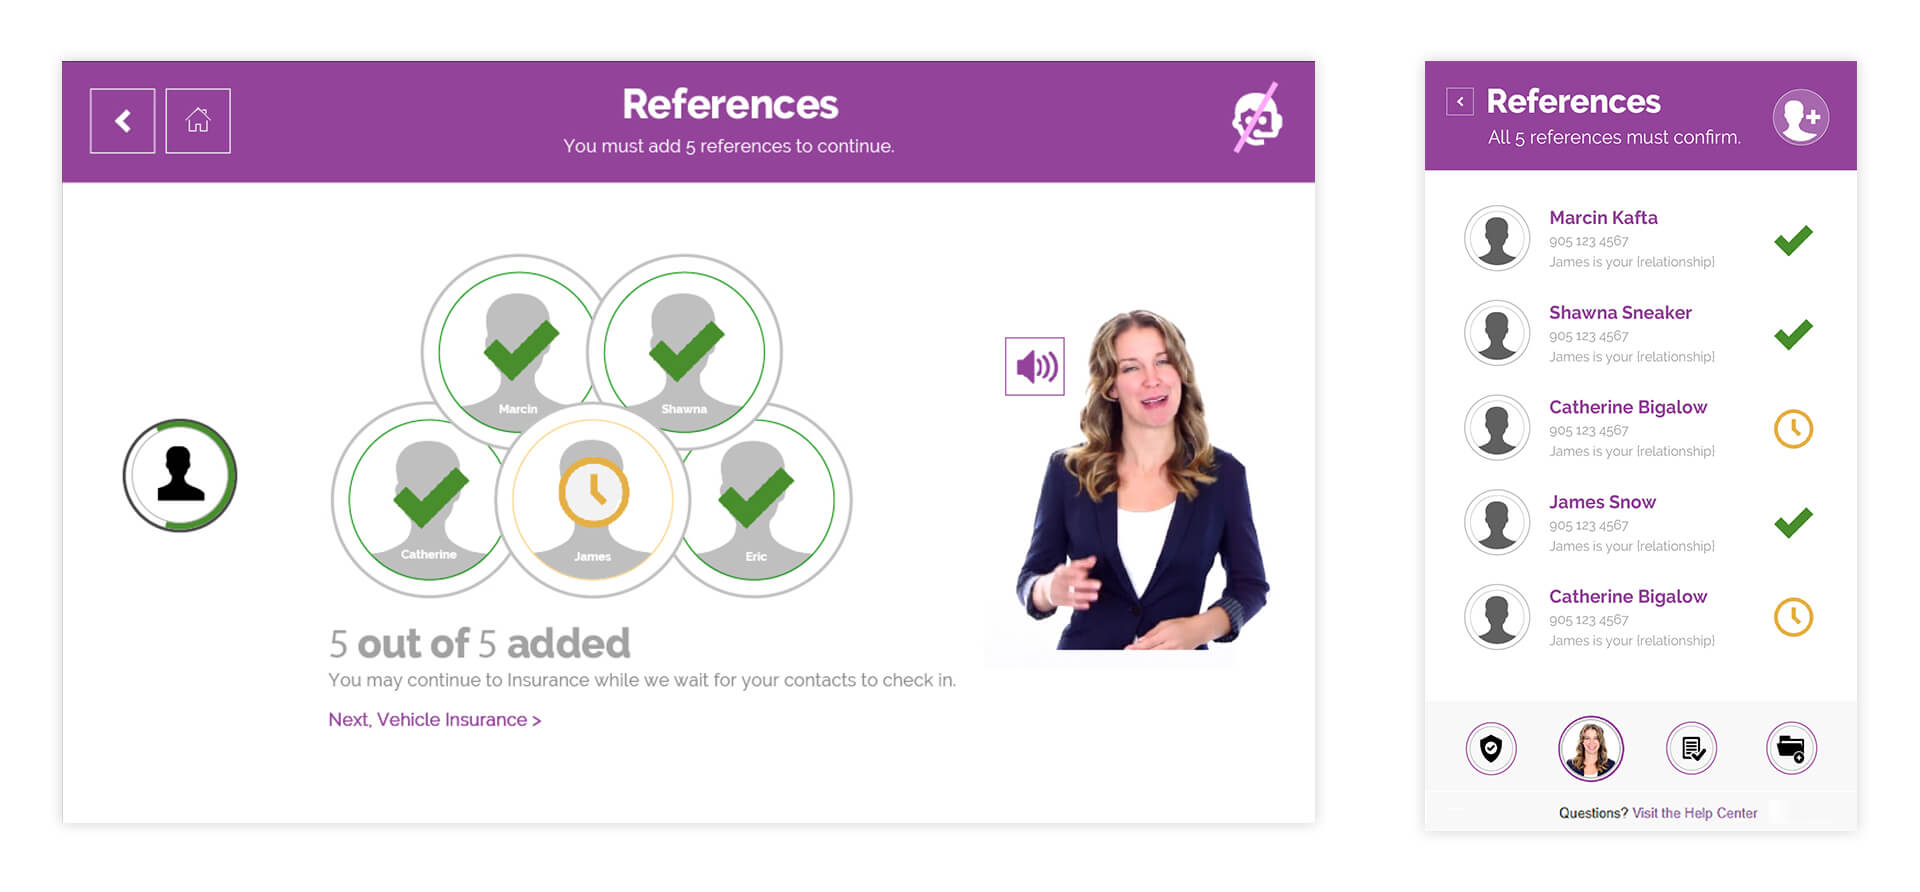 audit_id_references_5references-1waiting-mobile-loans_cars-marcin-migdal-ux-ui-designer-toronto-creative-director